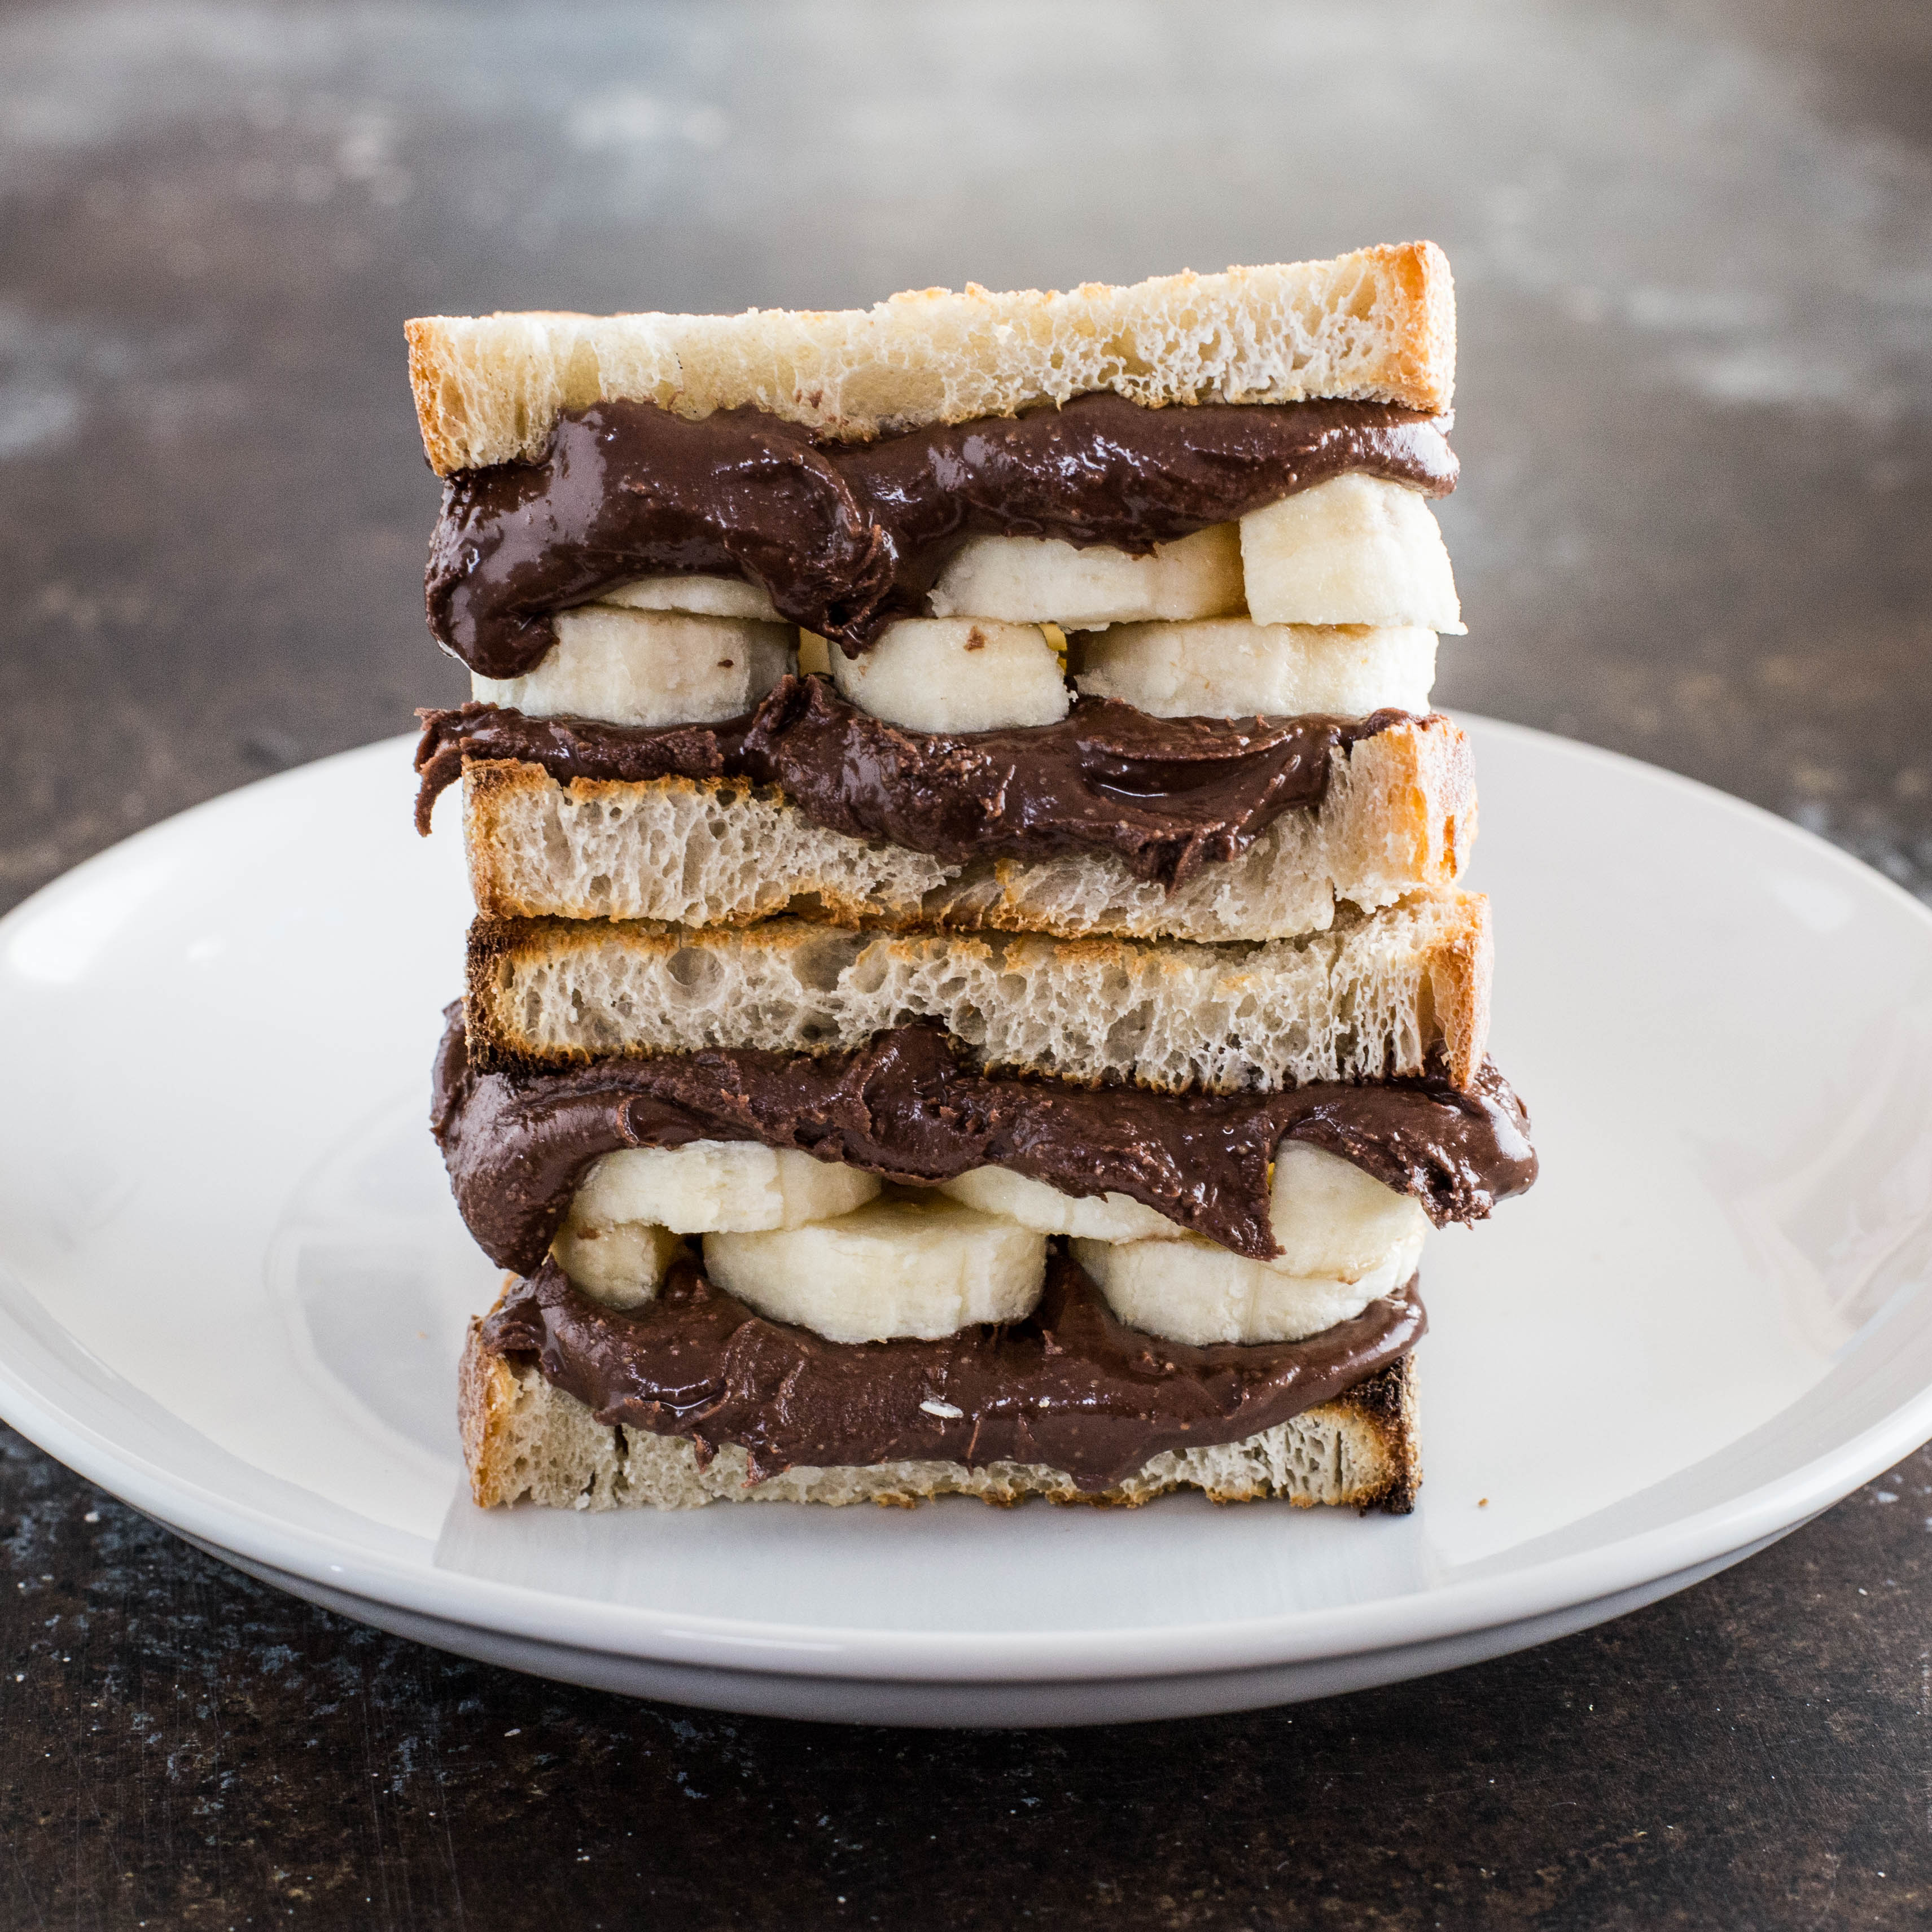 Grilled Chocolate Peanut Butter Banana Sandwich